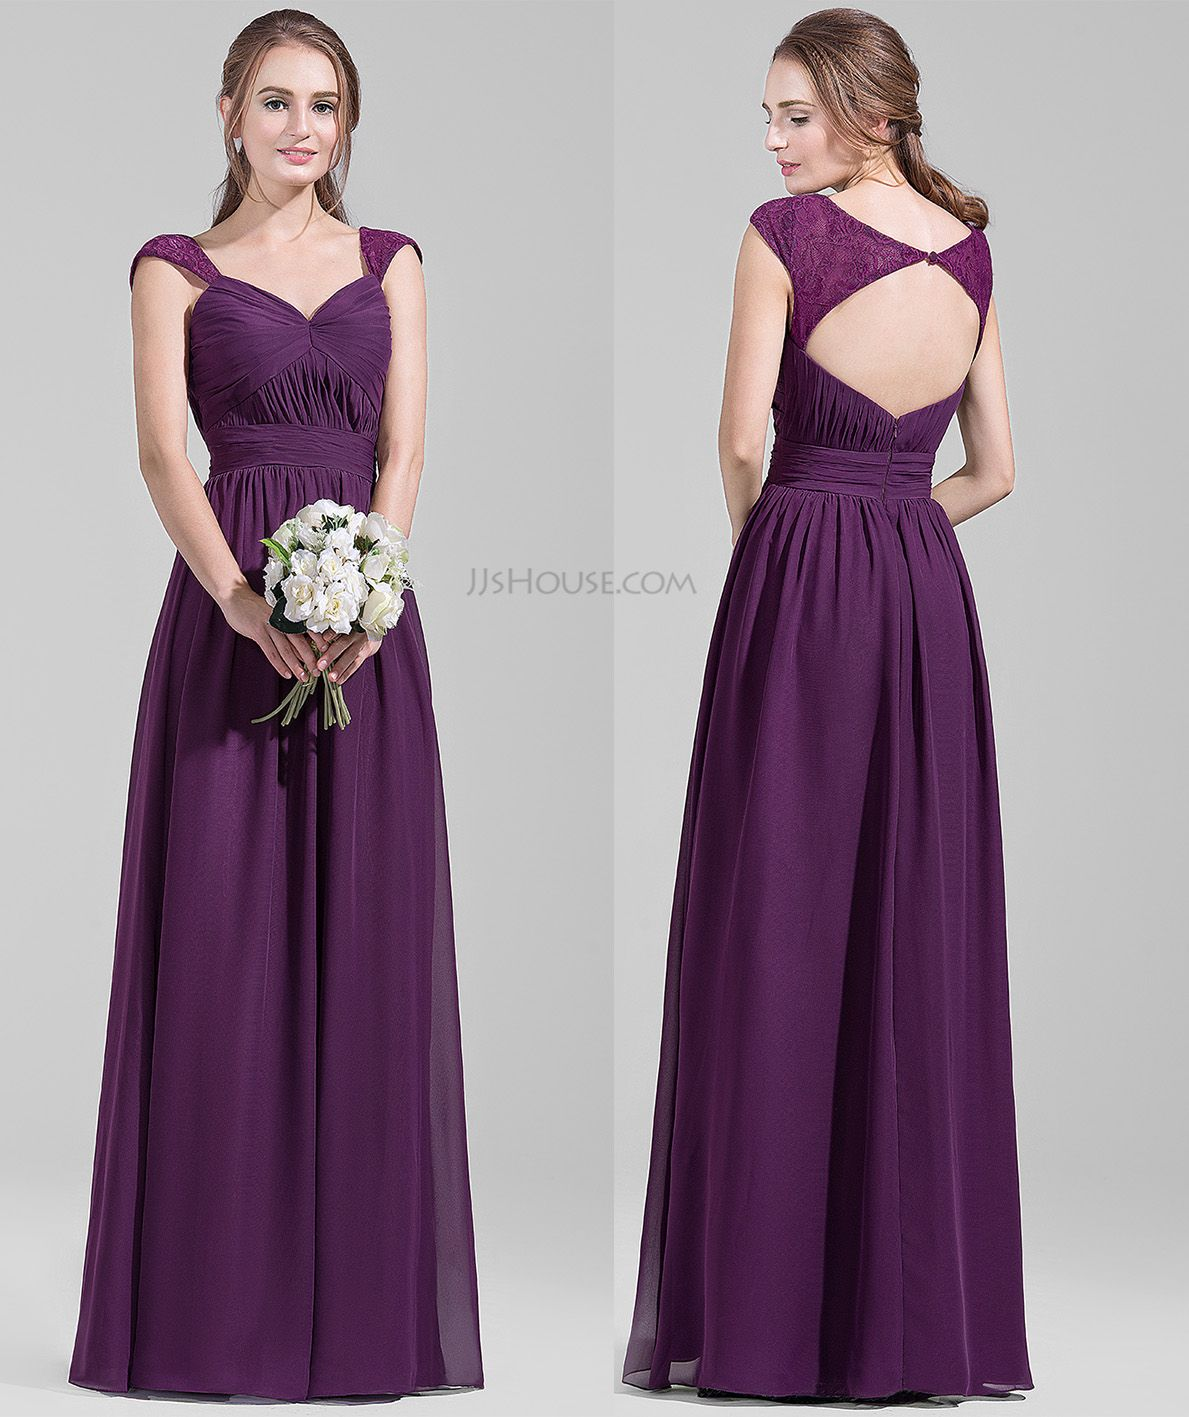 Sweet-heart bridesmaid dress. #jjshouse | Vestidos | Pinterest ...